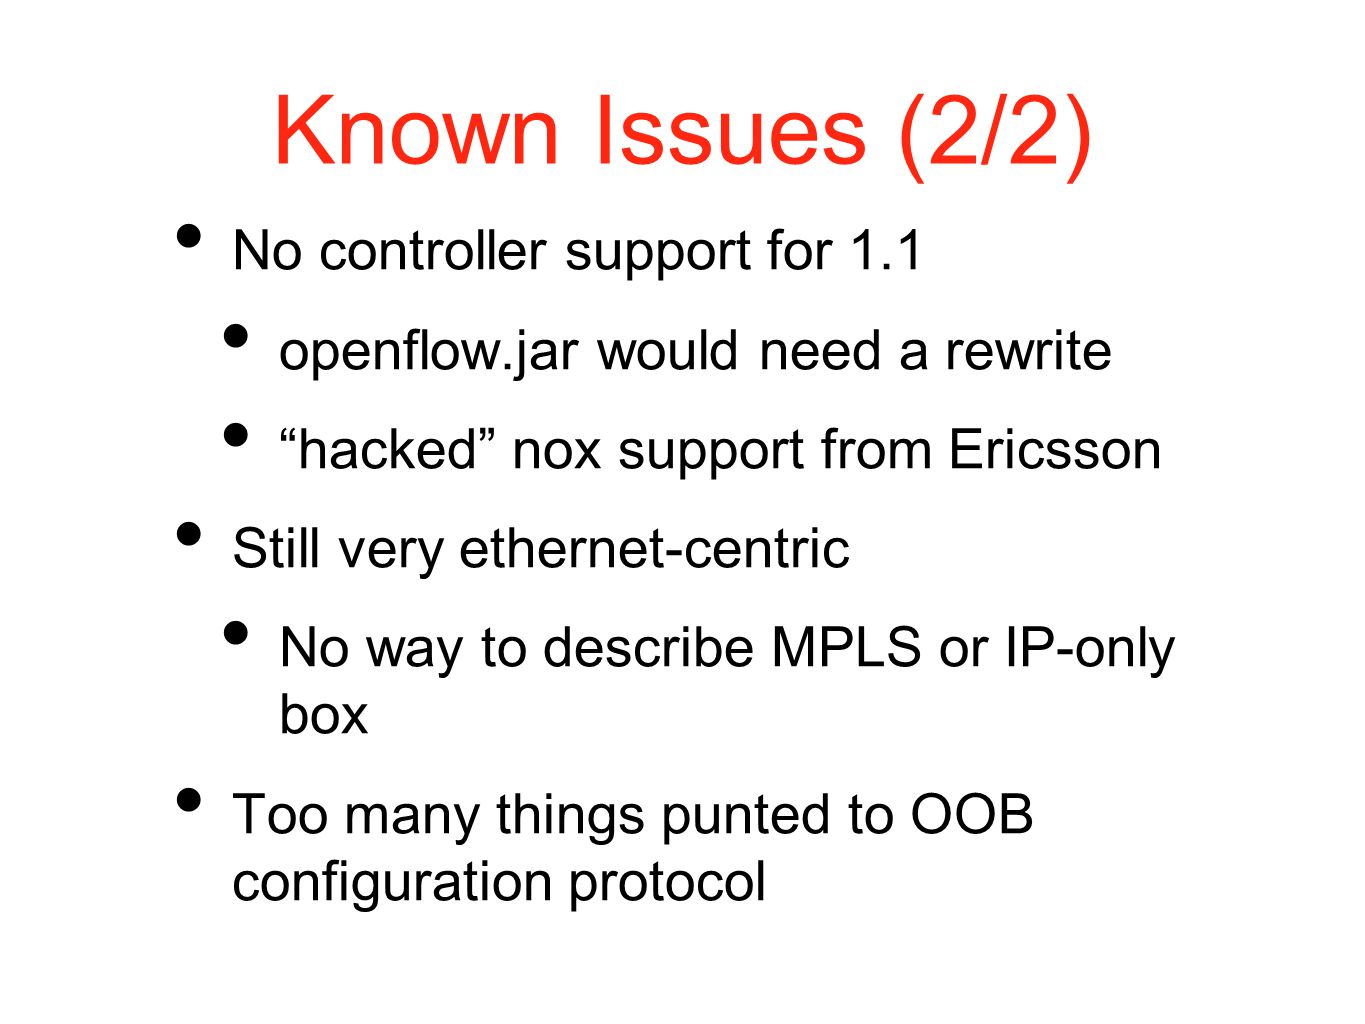 Known Issues (2/2) No controller support for 1.1 openflow.jar would need a rewrite hacked nox support from Ericsson Still very ethernet-centric No way to describe MPLS or IP-only box Too many things punted to OOB configuration protocol